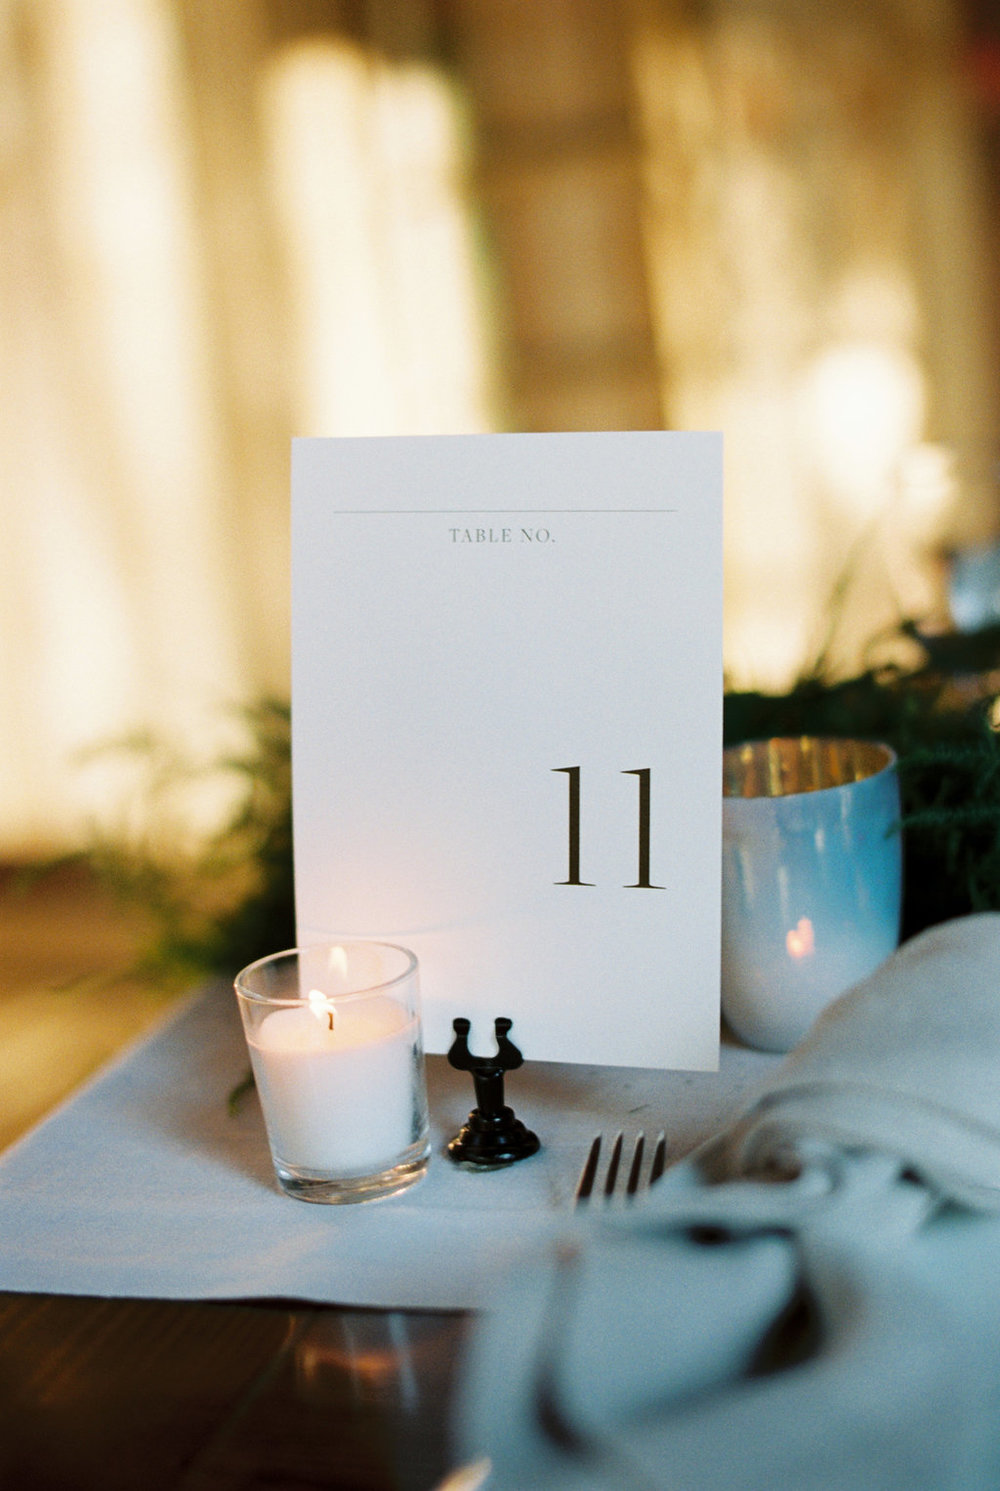 Custom table numbers for a spring farm wedding, combining classic style with the natural environment.